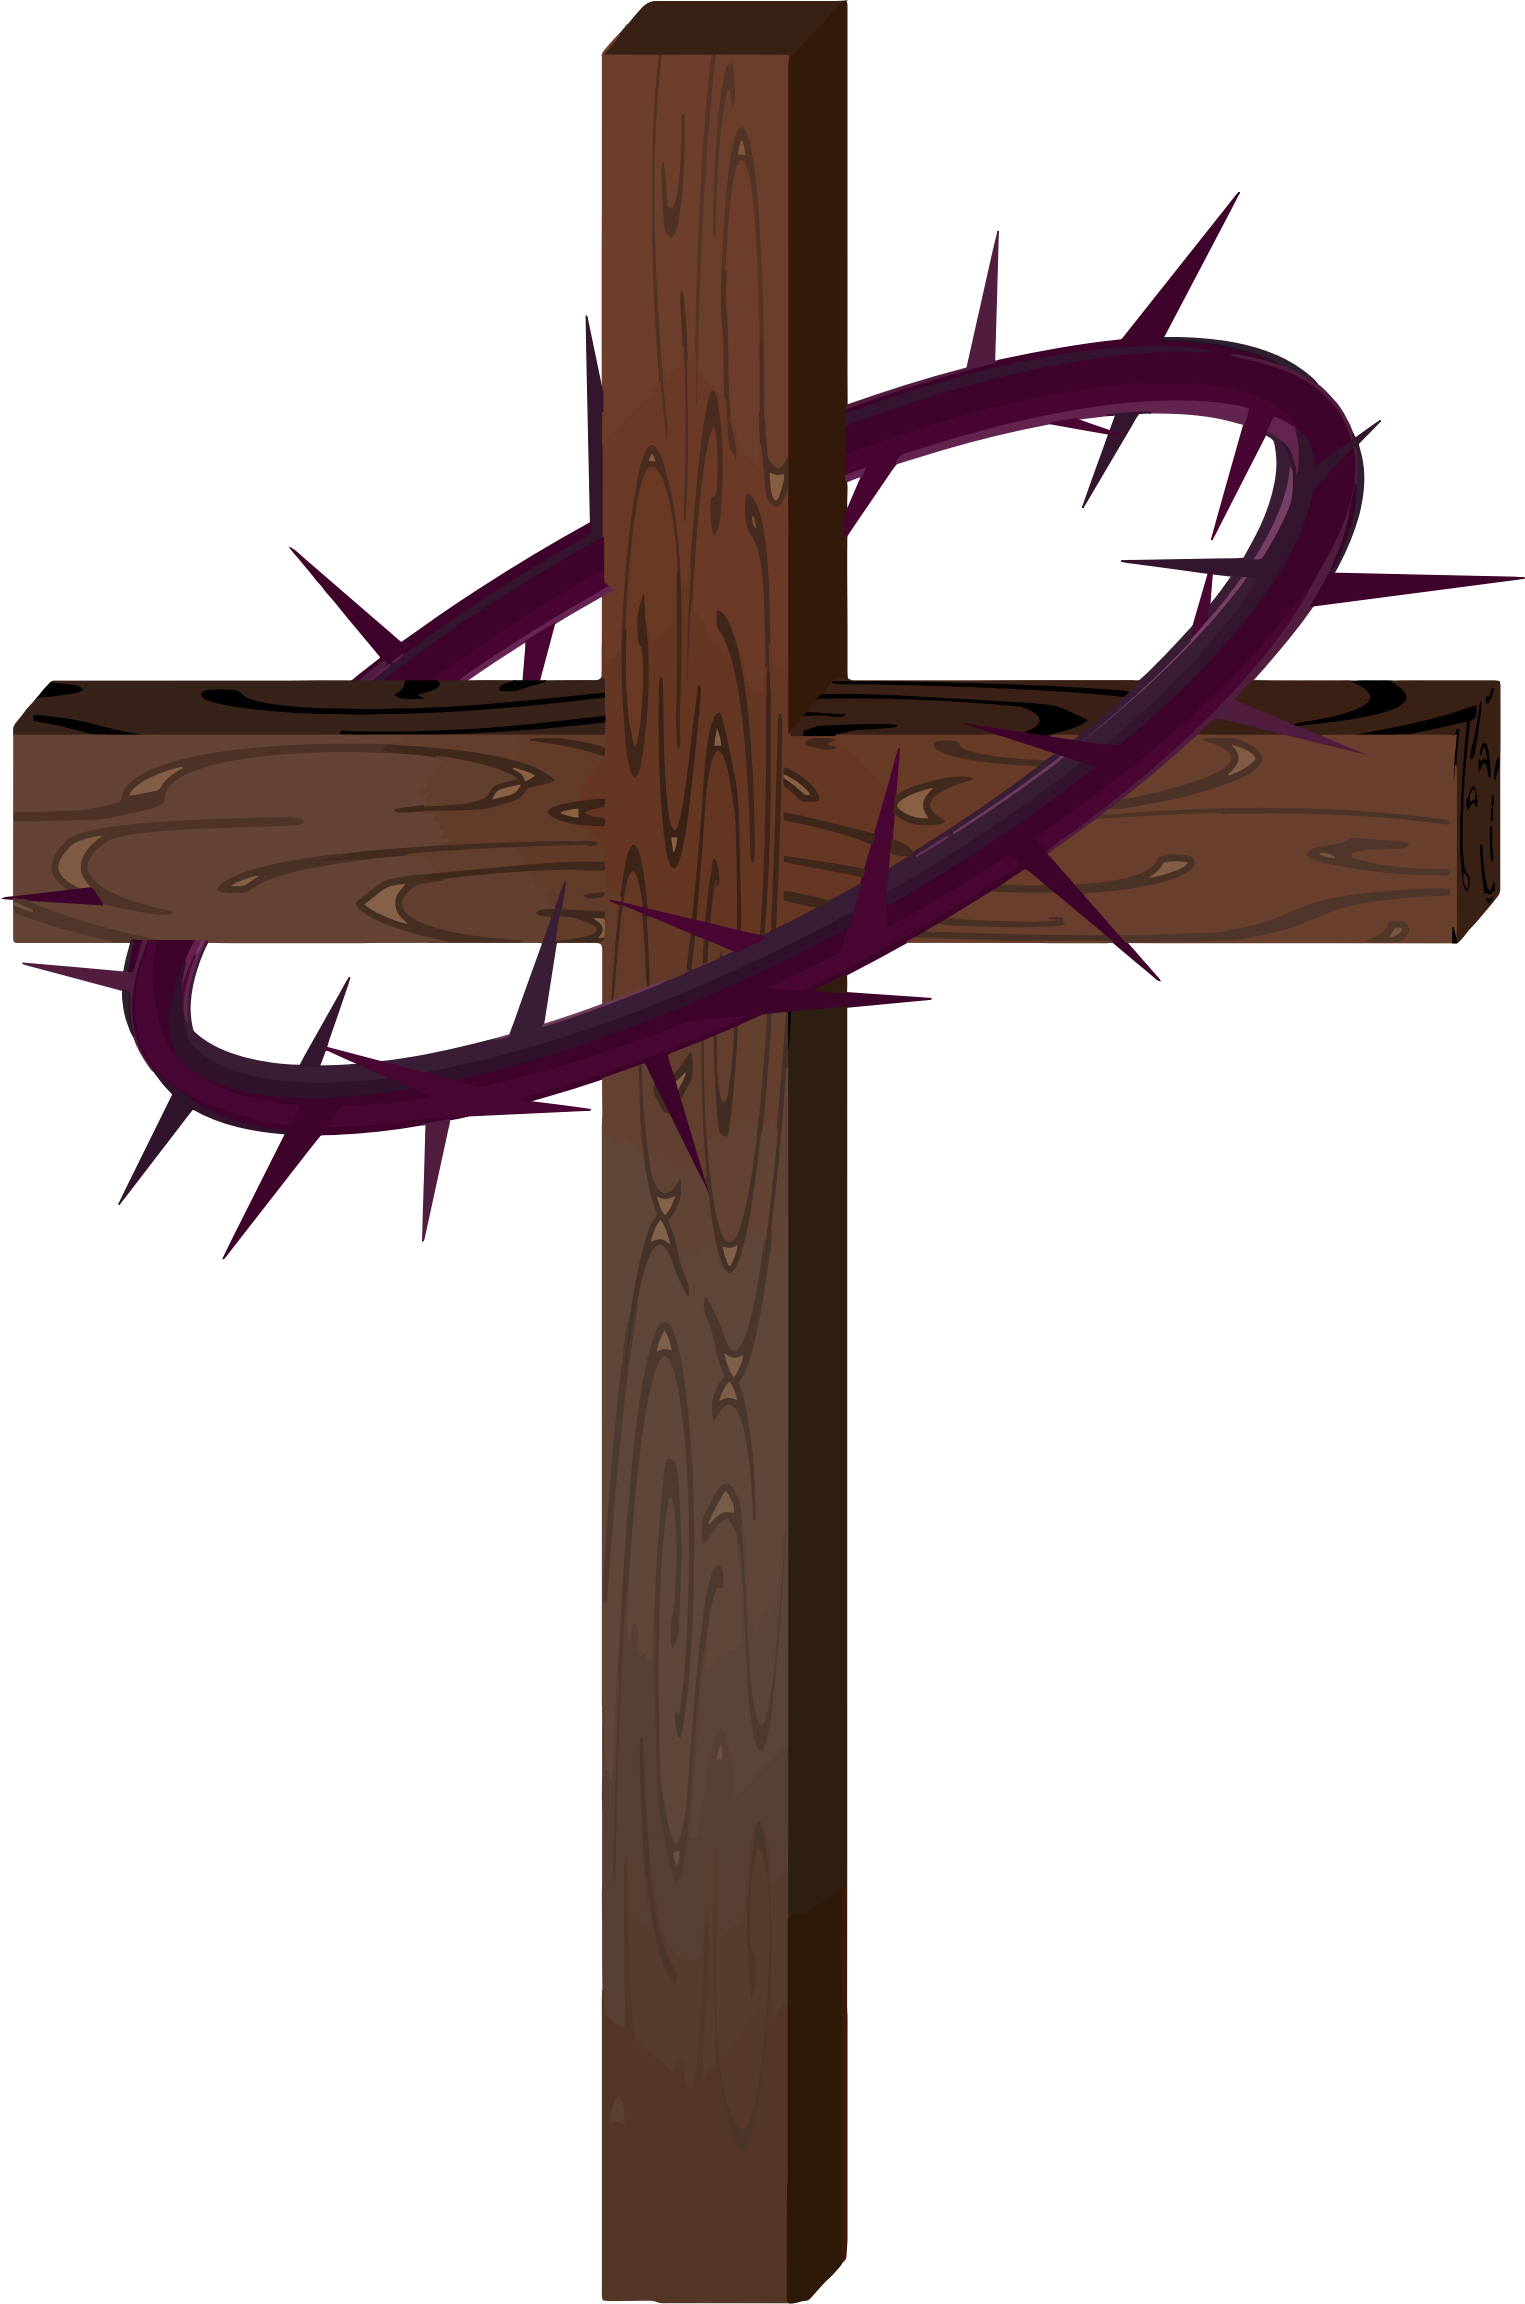 Cross with crown of thorns clipart transparent Clipart - Cross With Crown Of Thorns transparent